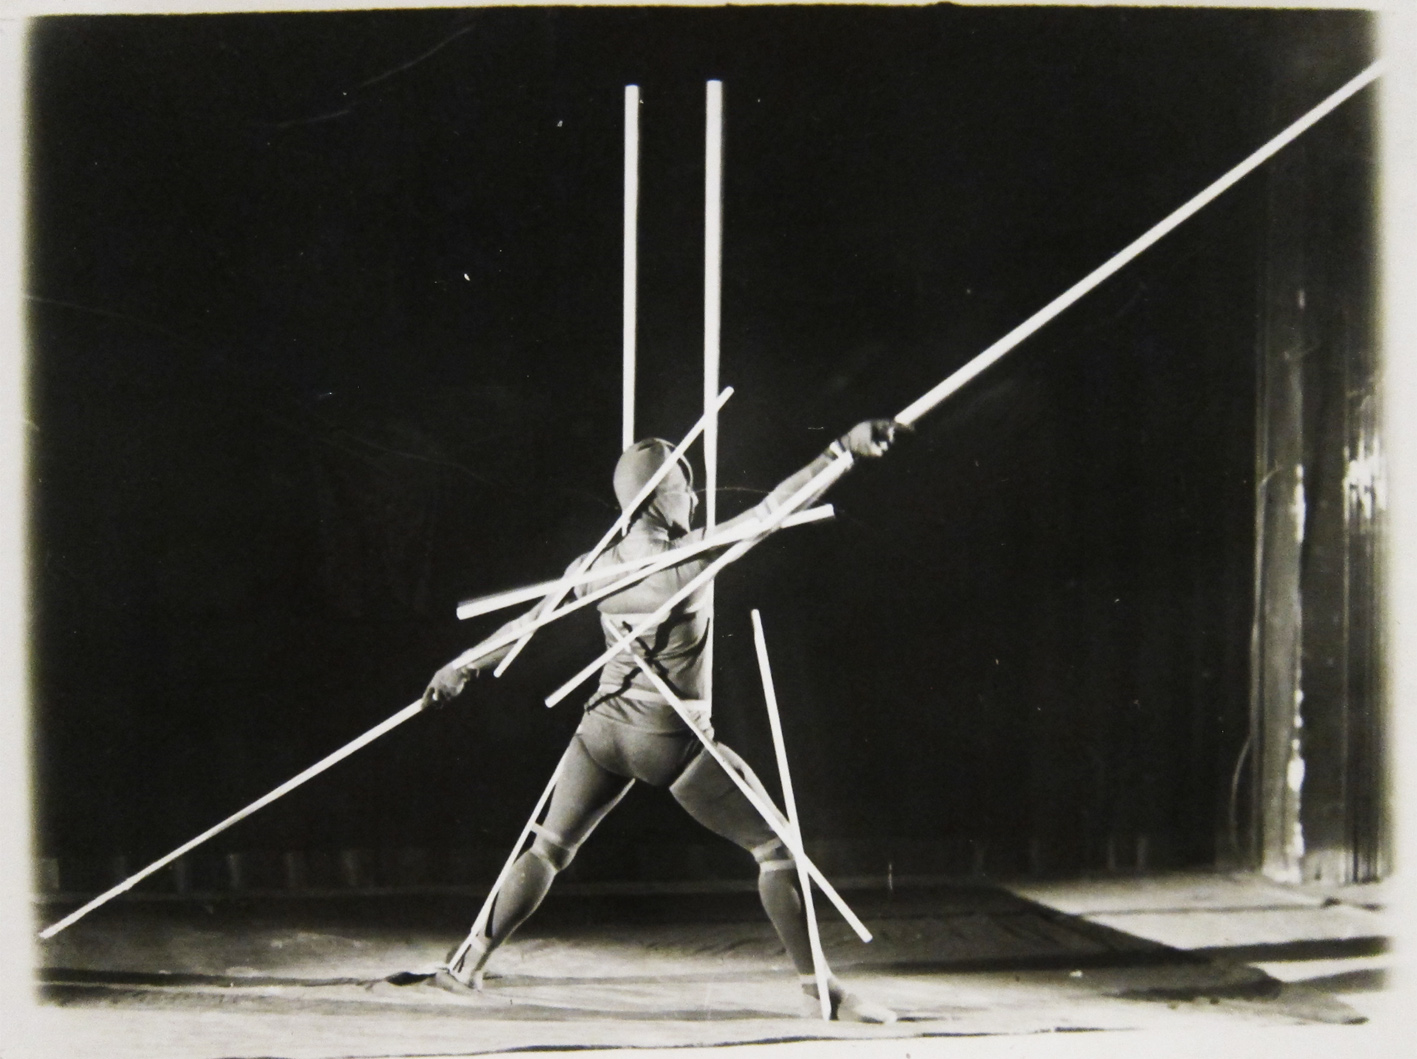 Bauhaus design. Dancer on a stage